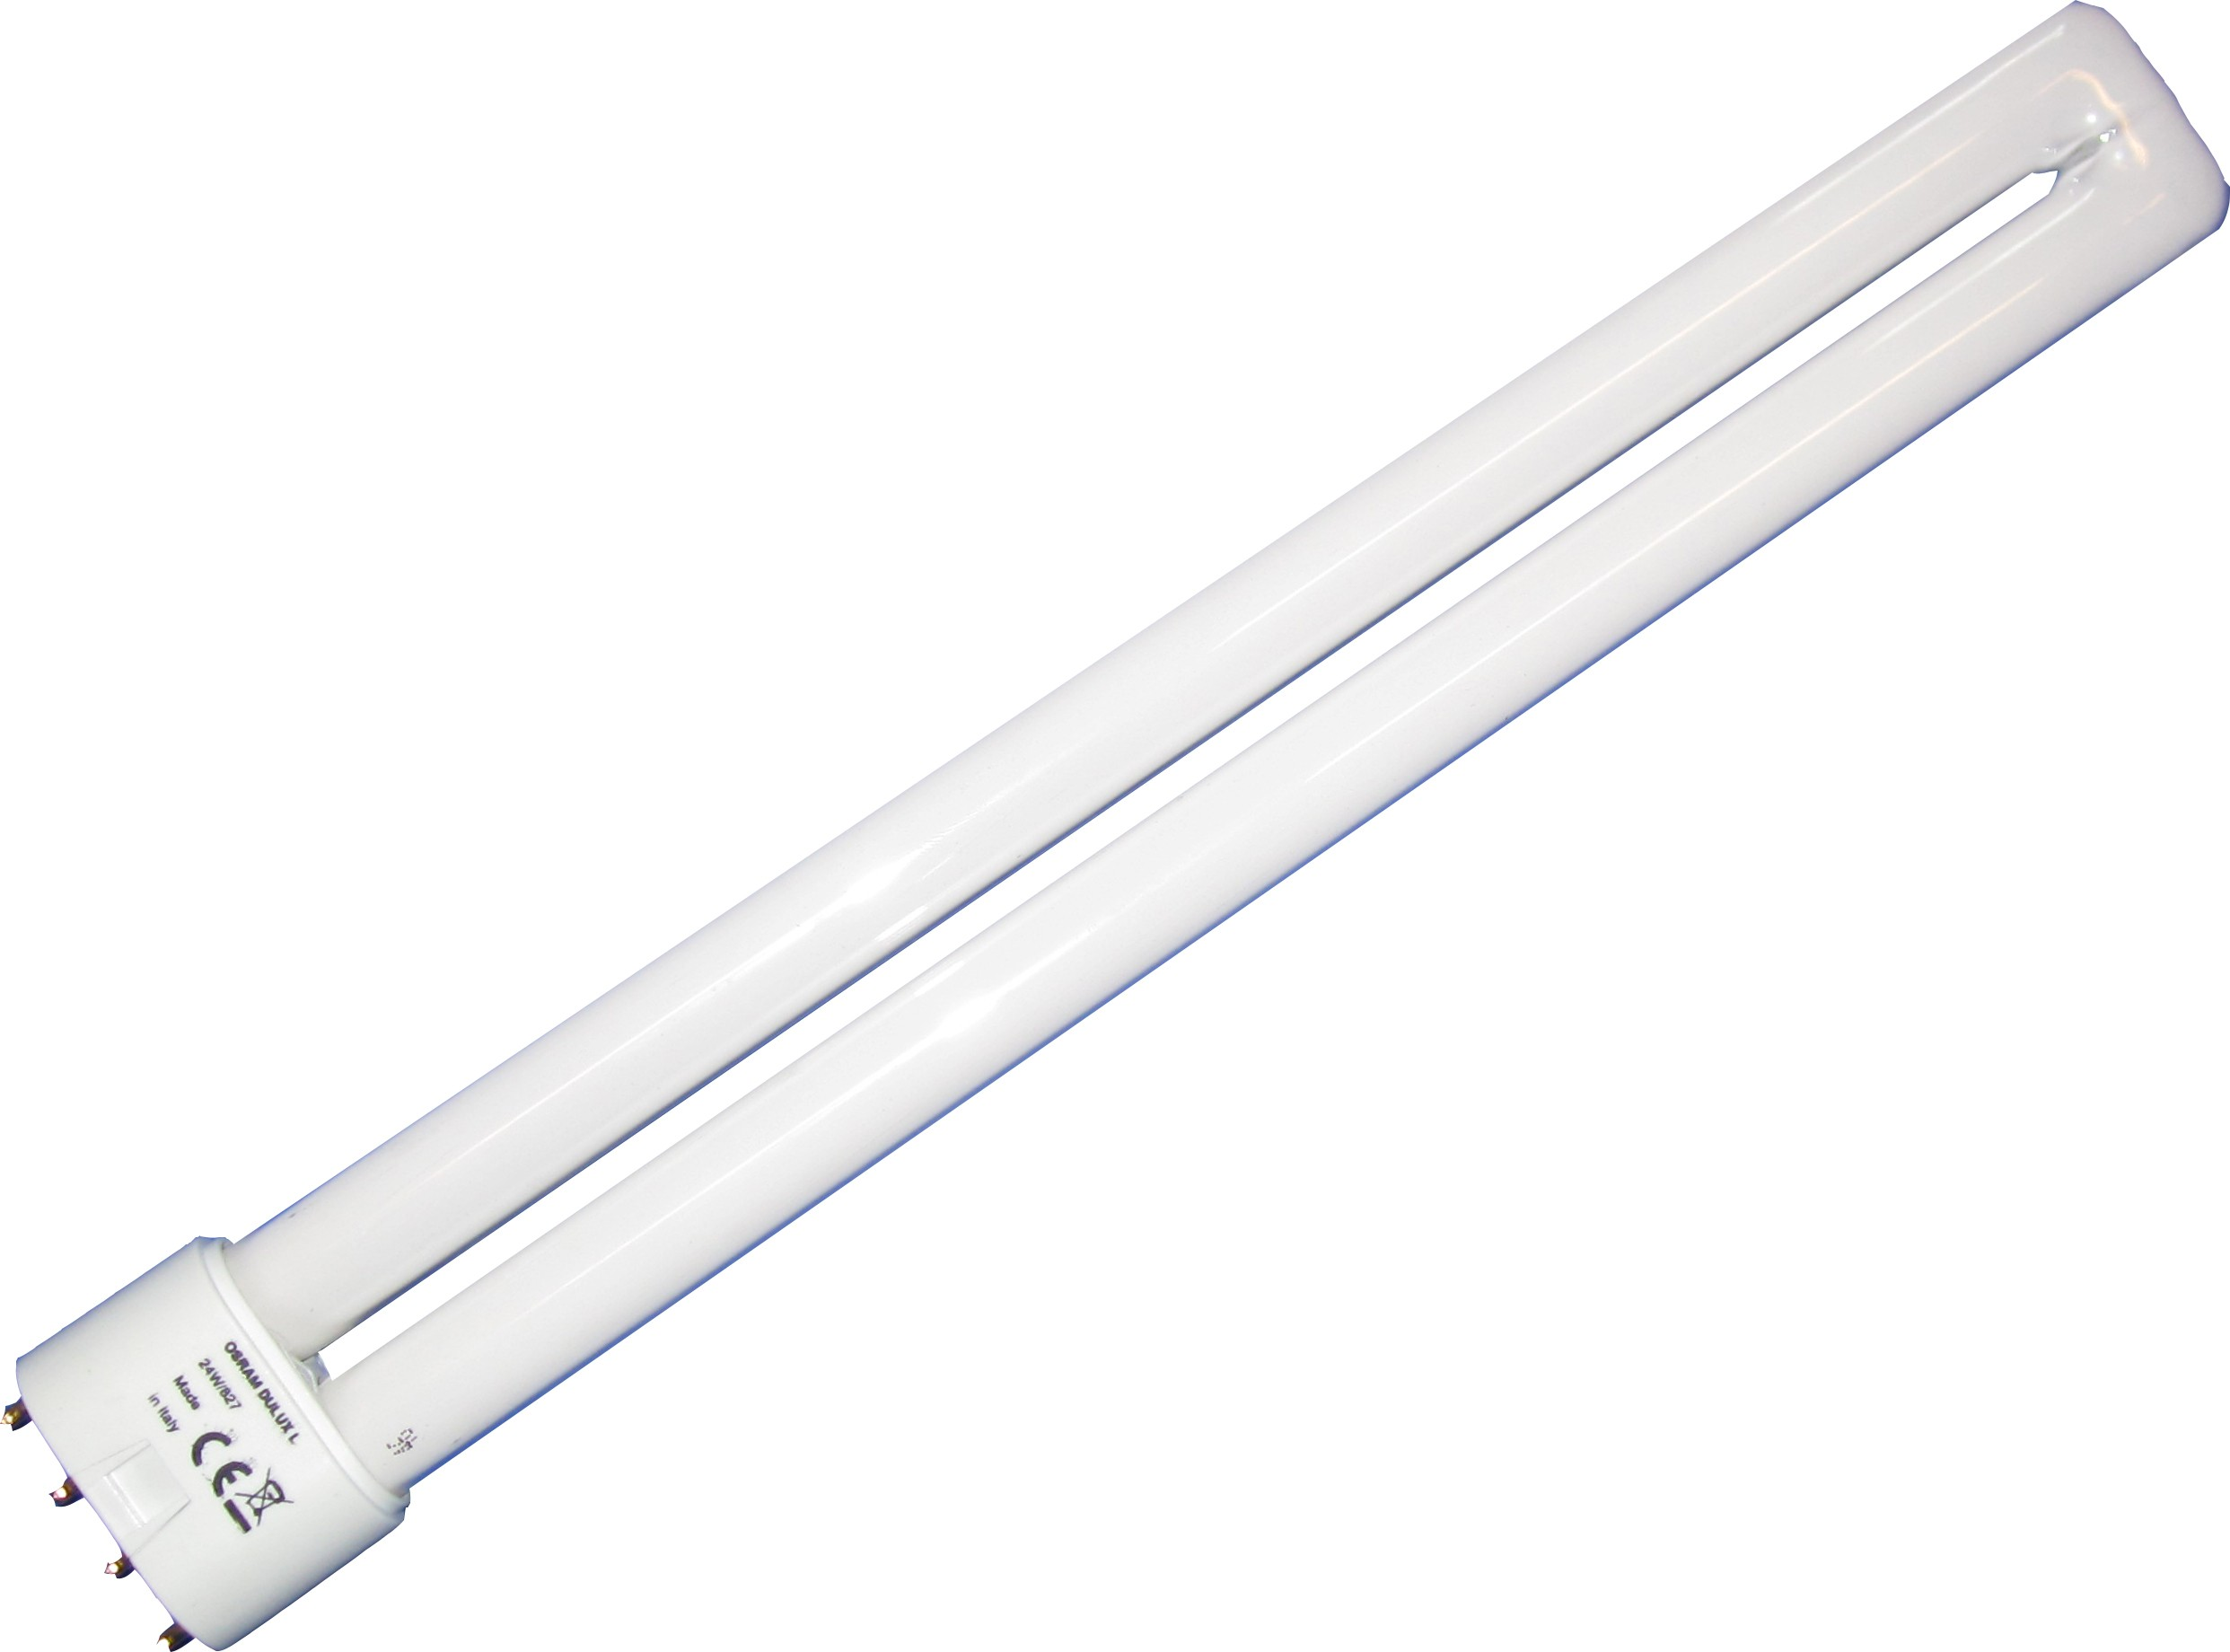 Dulux L 24 Watt 865 4P 2G11Outdoor - Osram